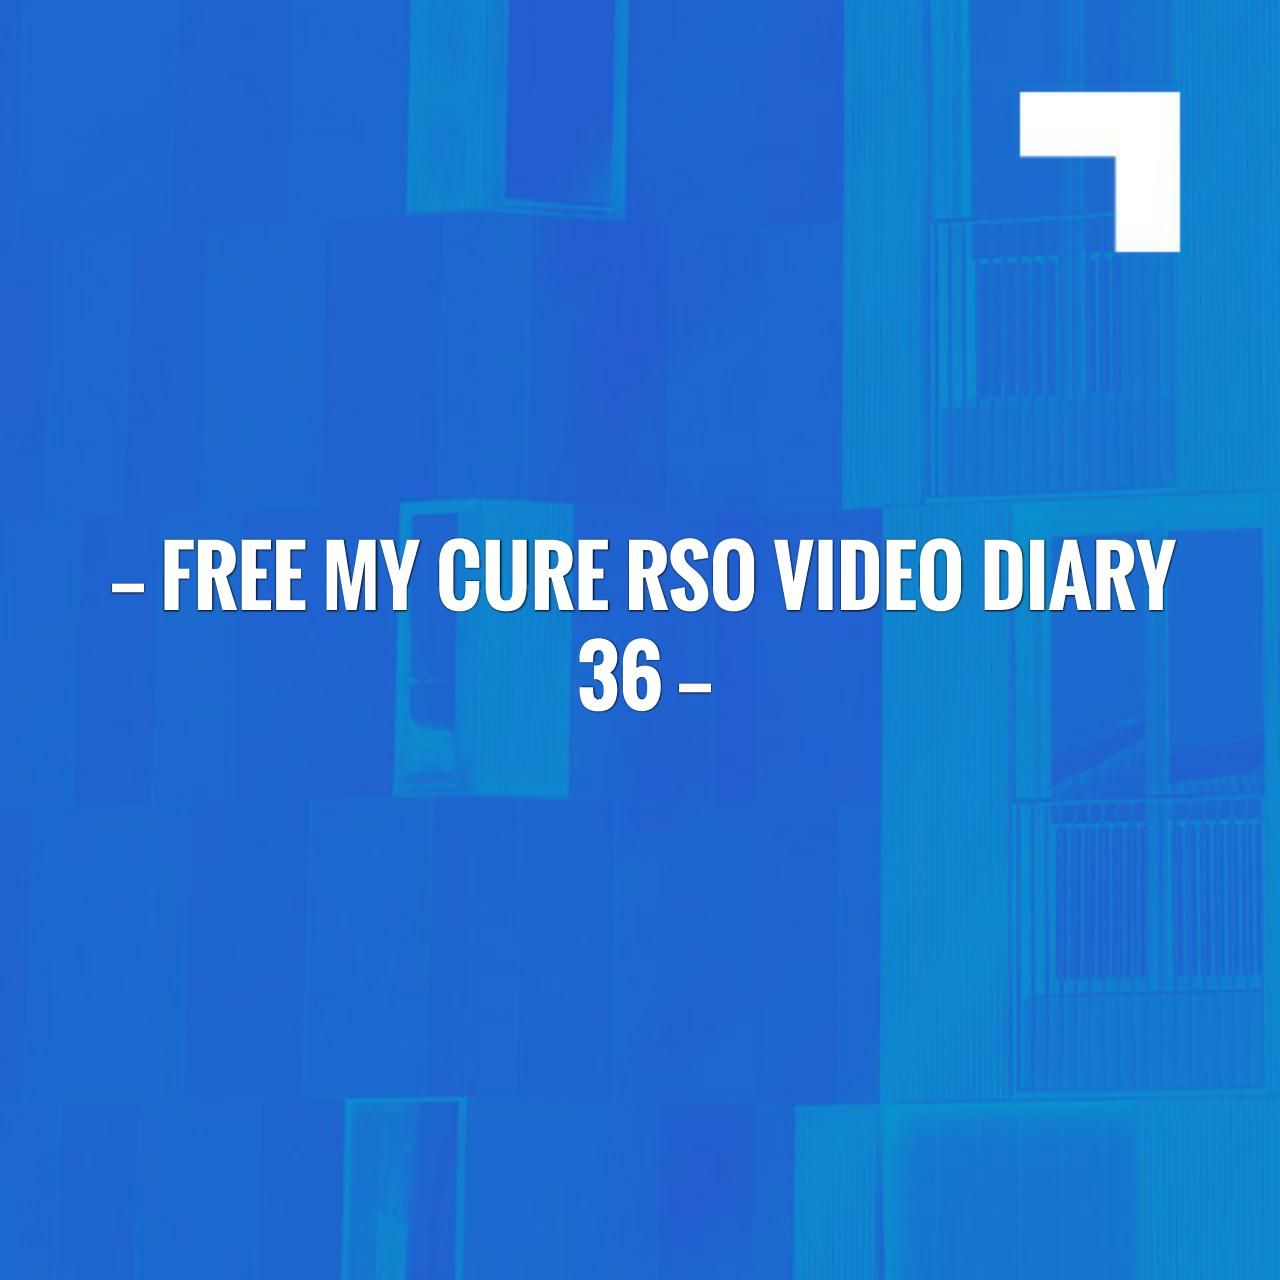 Free My Cure Rso Video Diary 36 Https Freemycure Org 2017